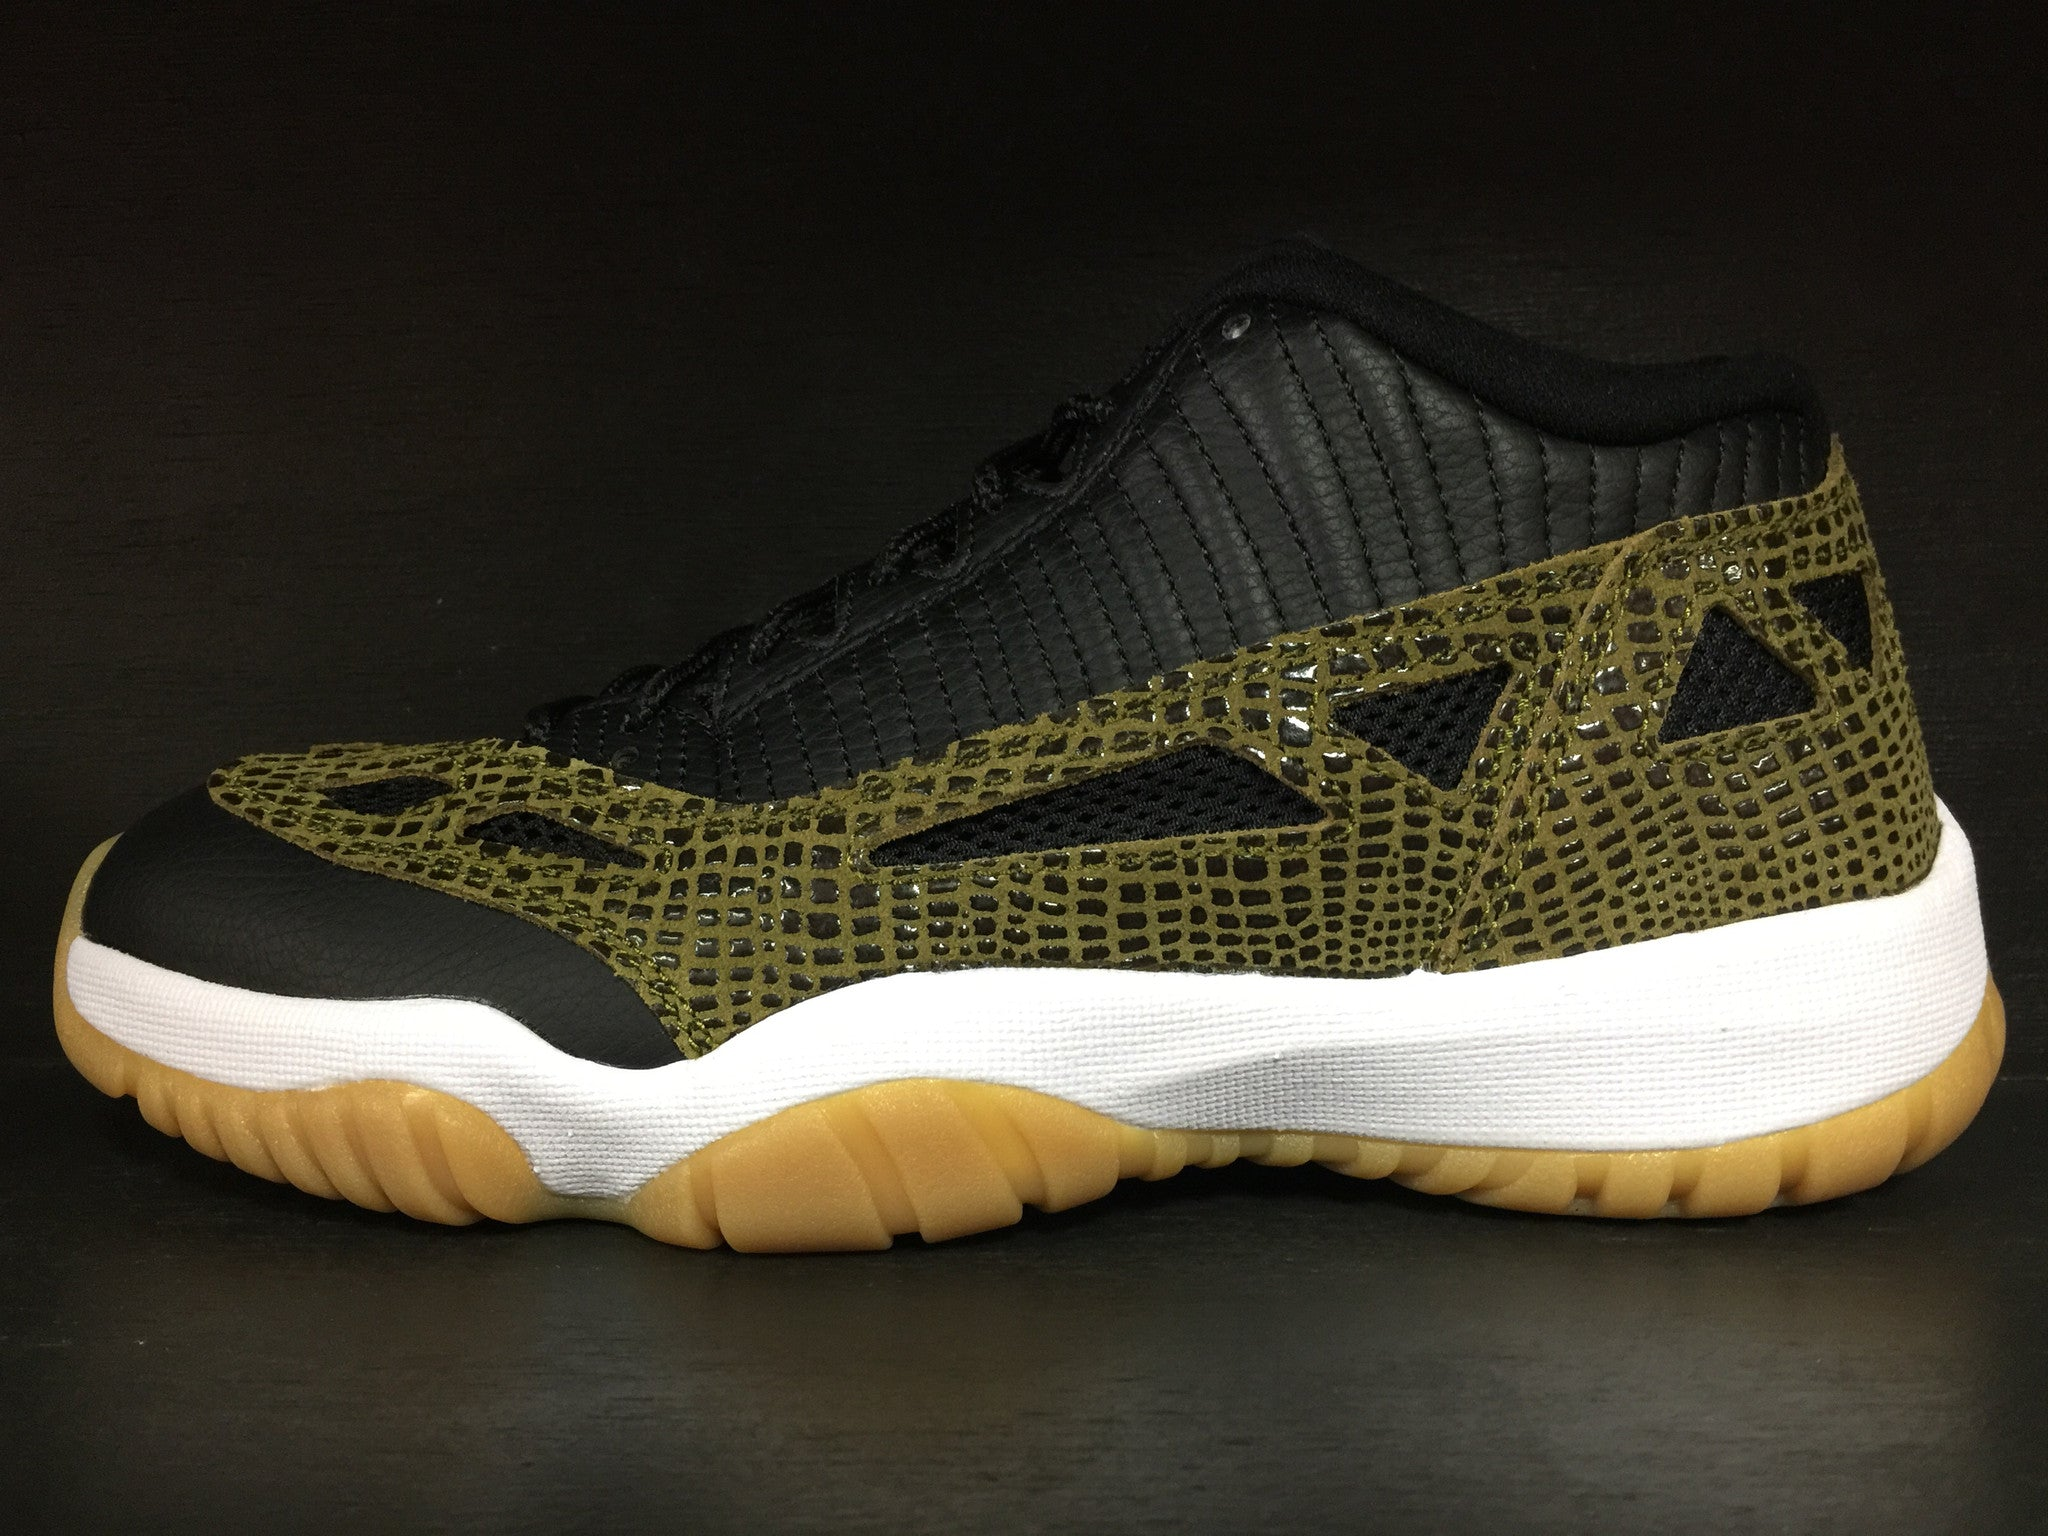 Air Jordan 11 IE Low 'Croc'